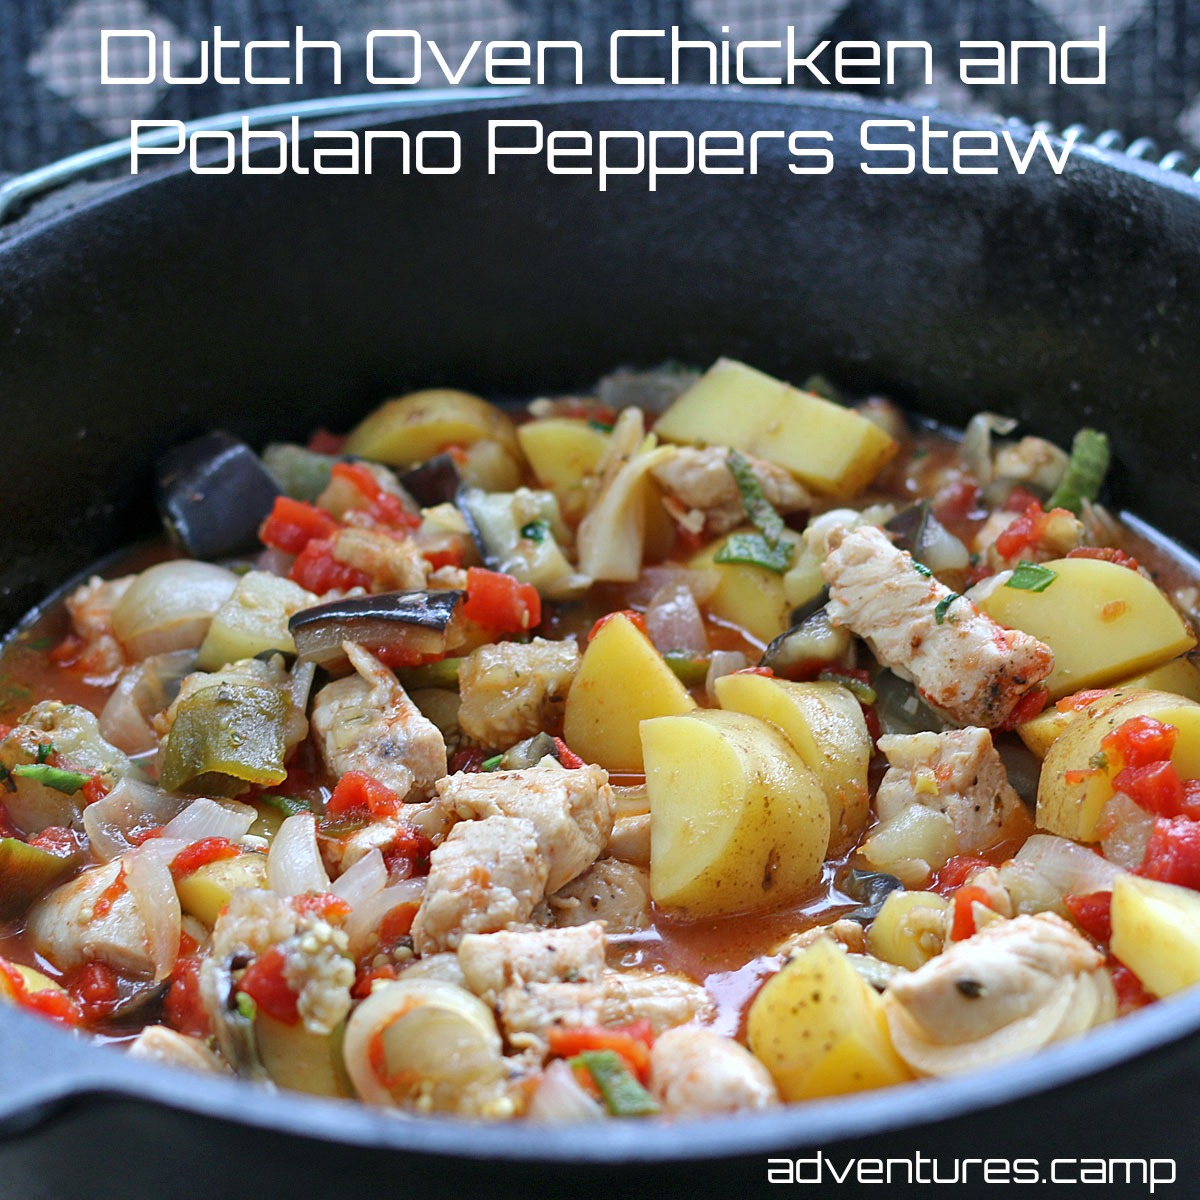 Dutch Oven Chicken and Poblano Peppers Stew